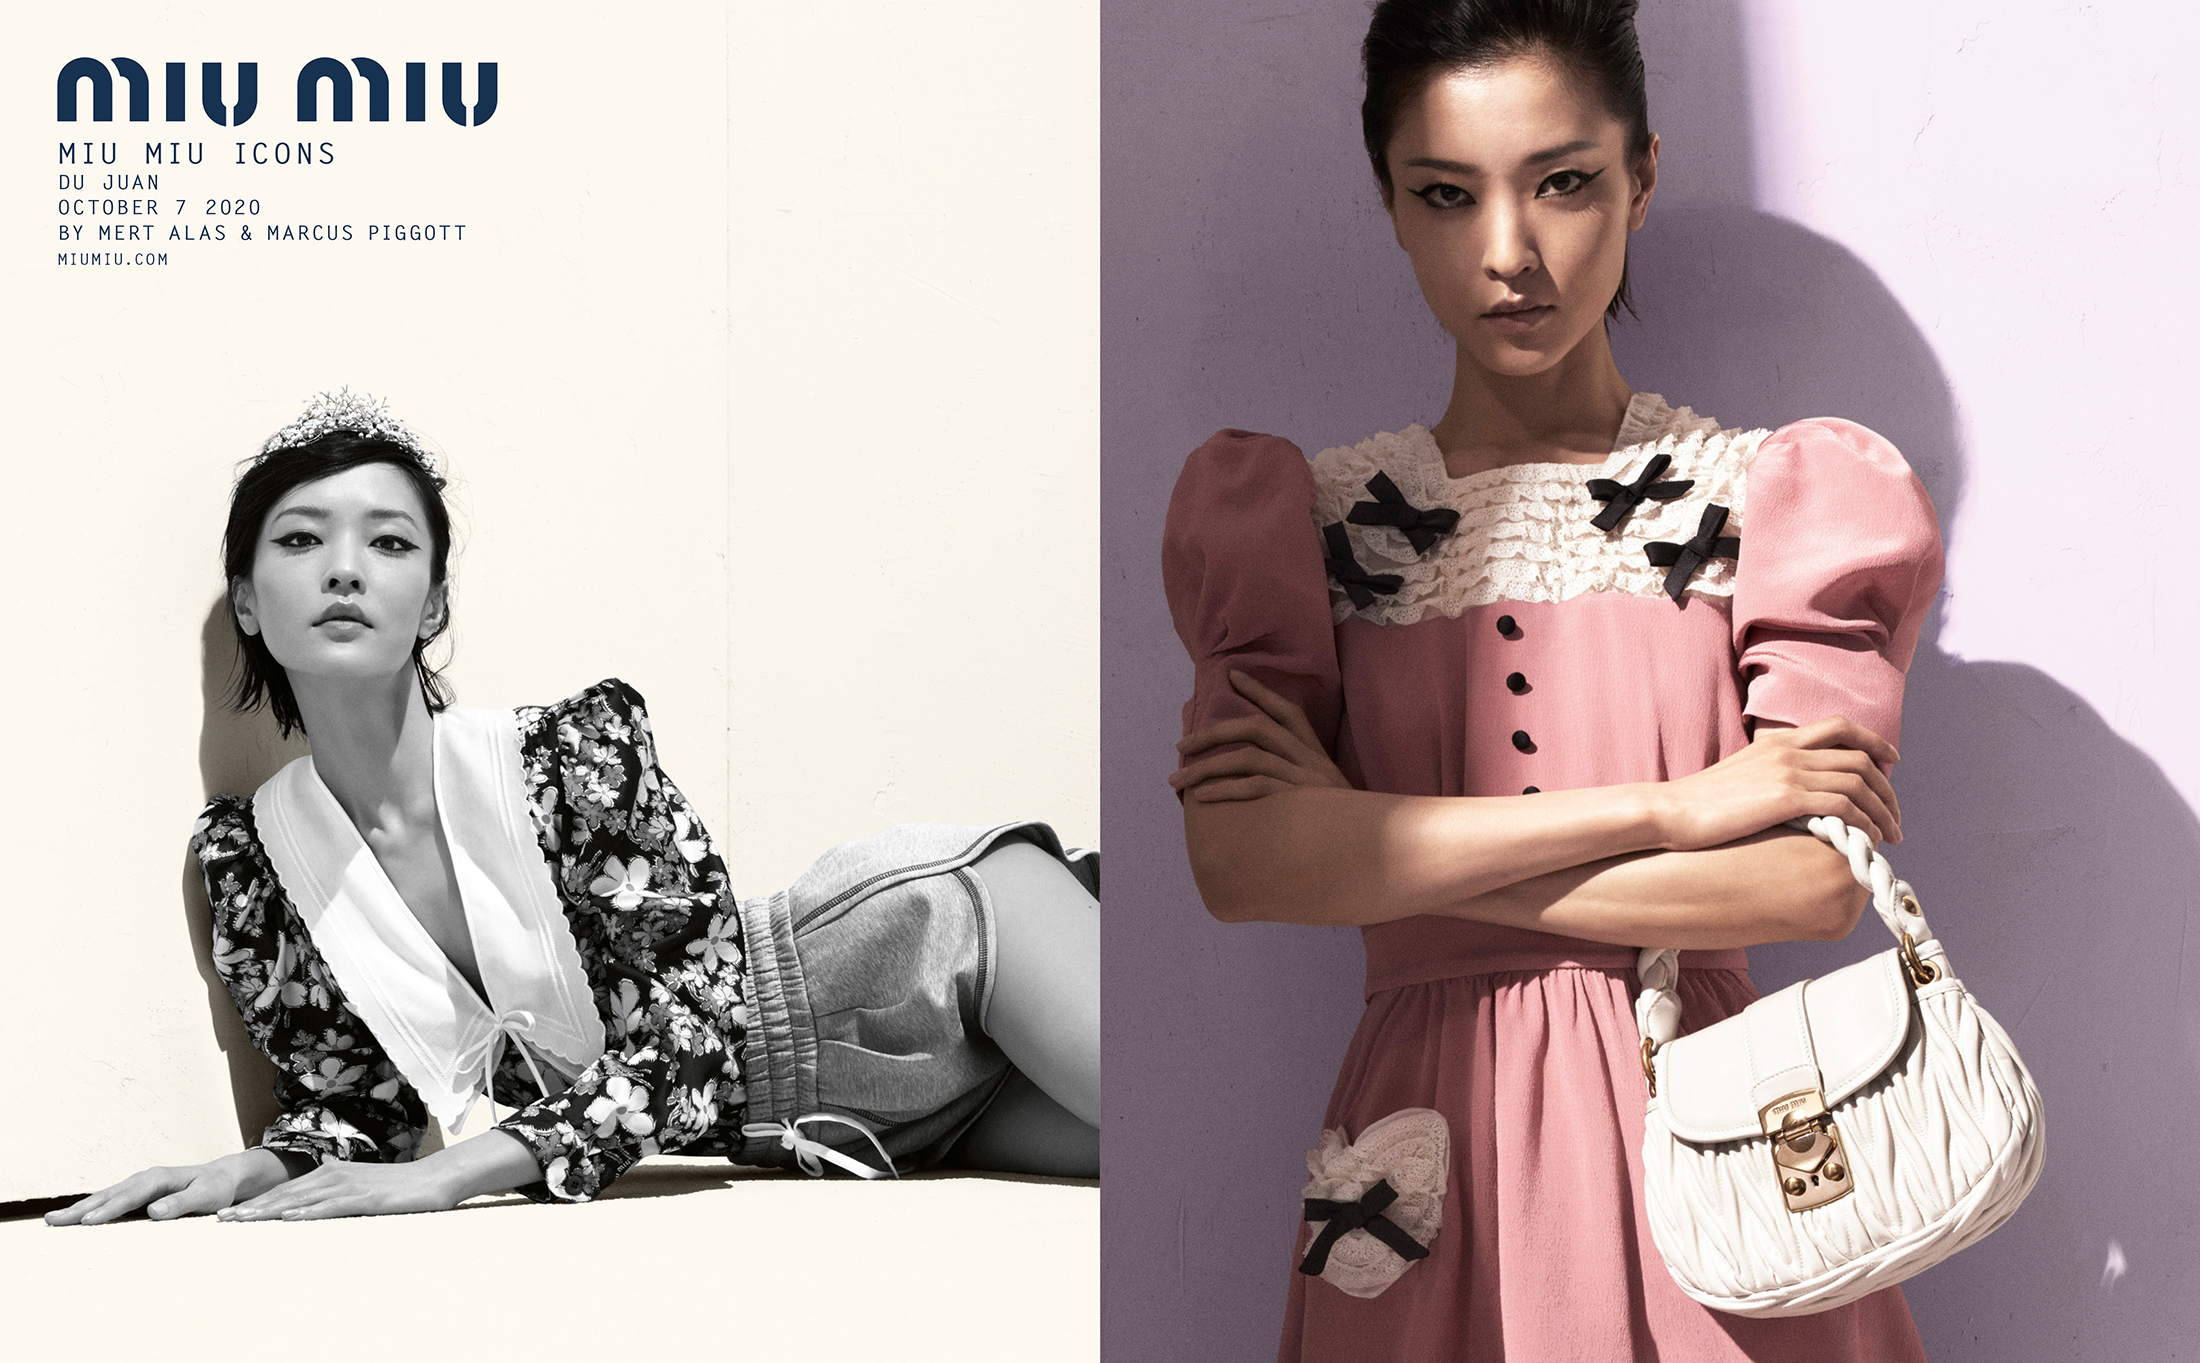 Miu Miu Holiday 2020 Ad Campaign Film & Photos